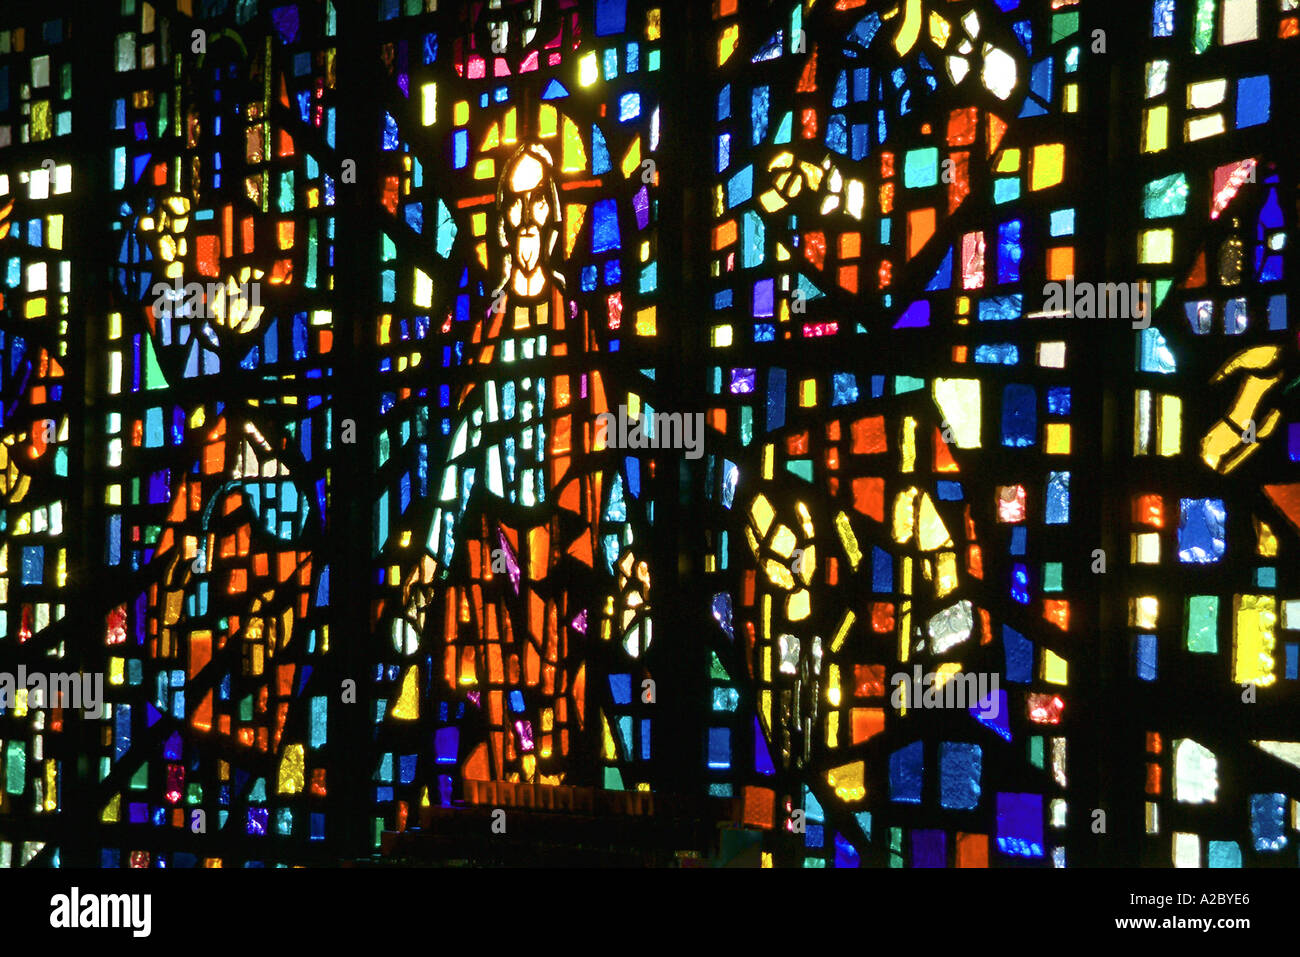 Roman Catholic Church Stained Glass Window Depicting Jesus Christ